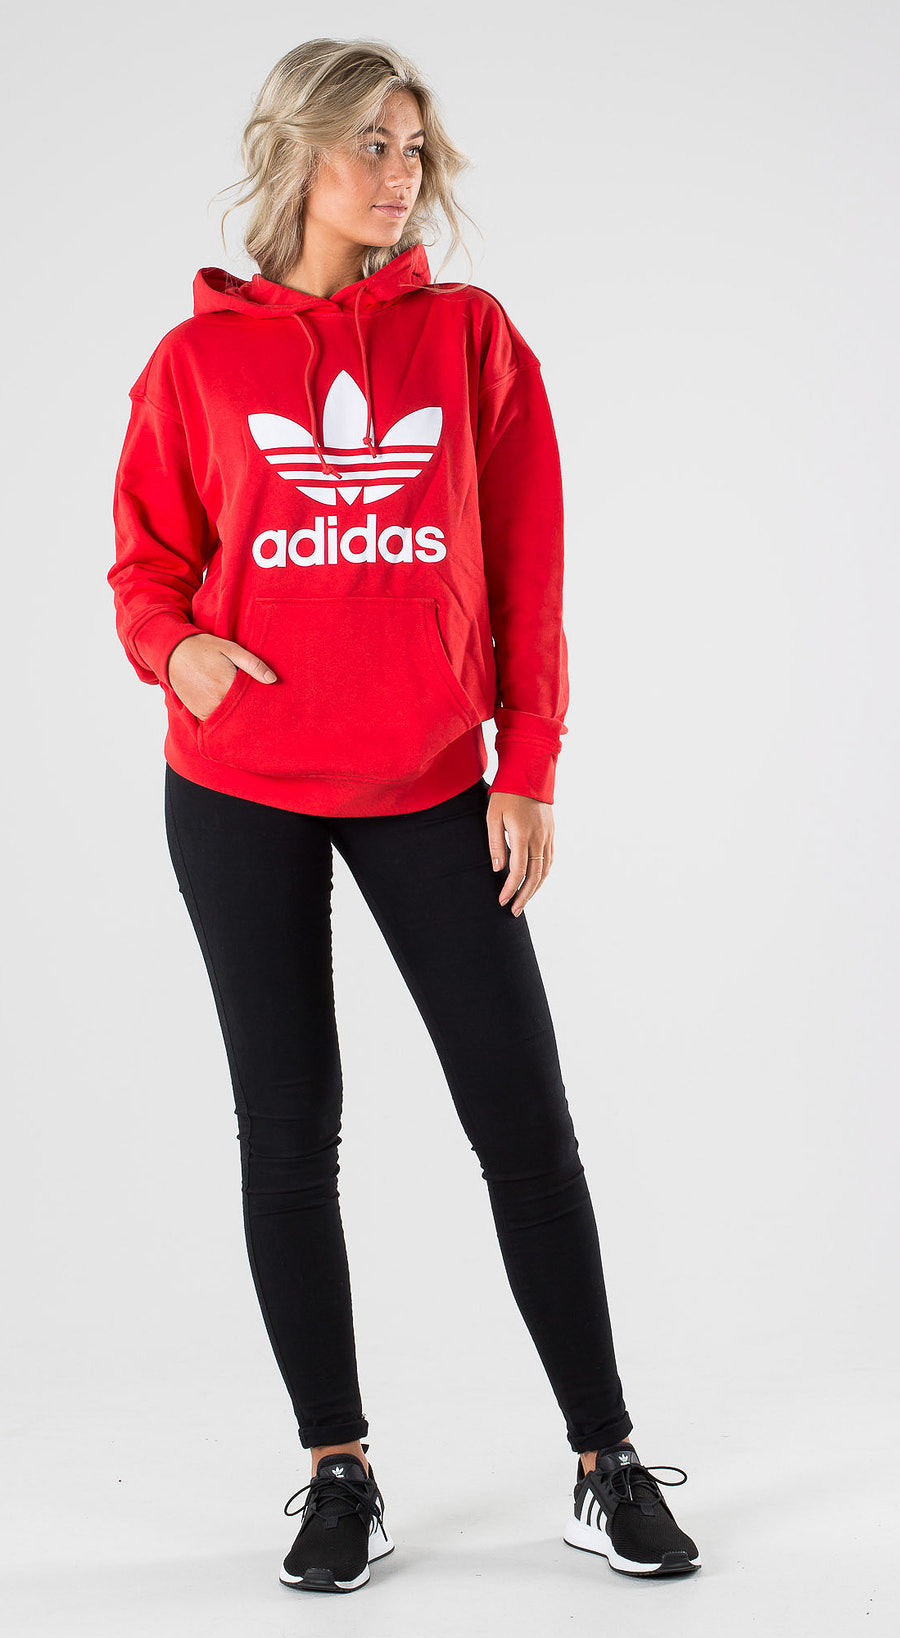 Adidas Originals Trefoil Hoodie Lush Red White Outfit Multi